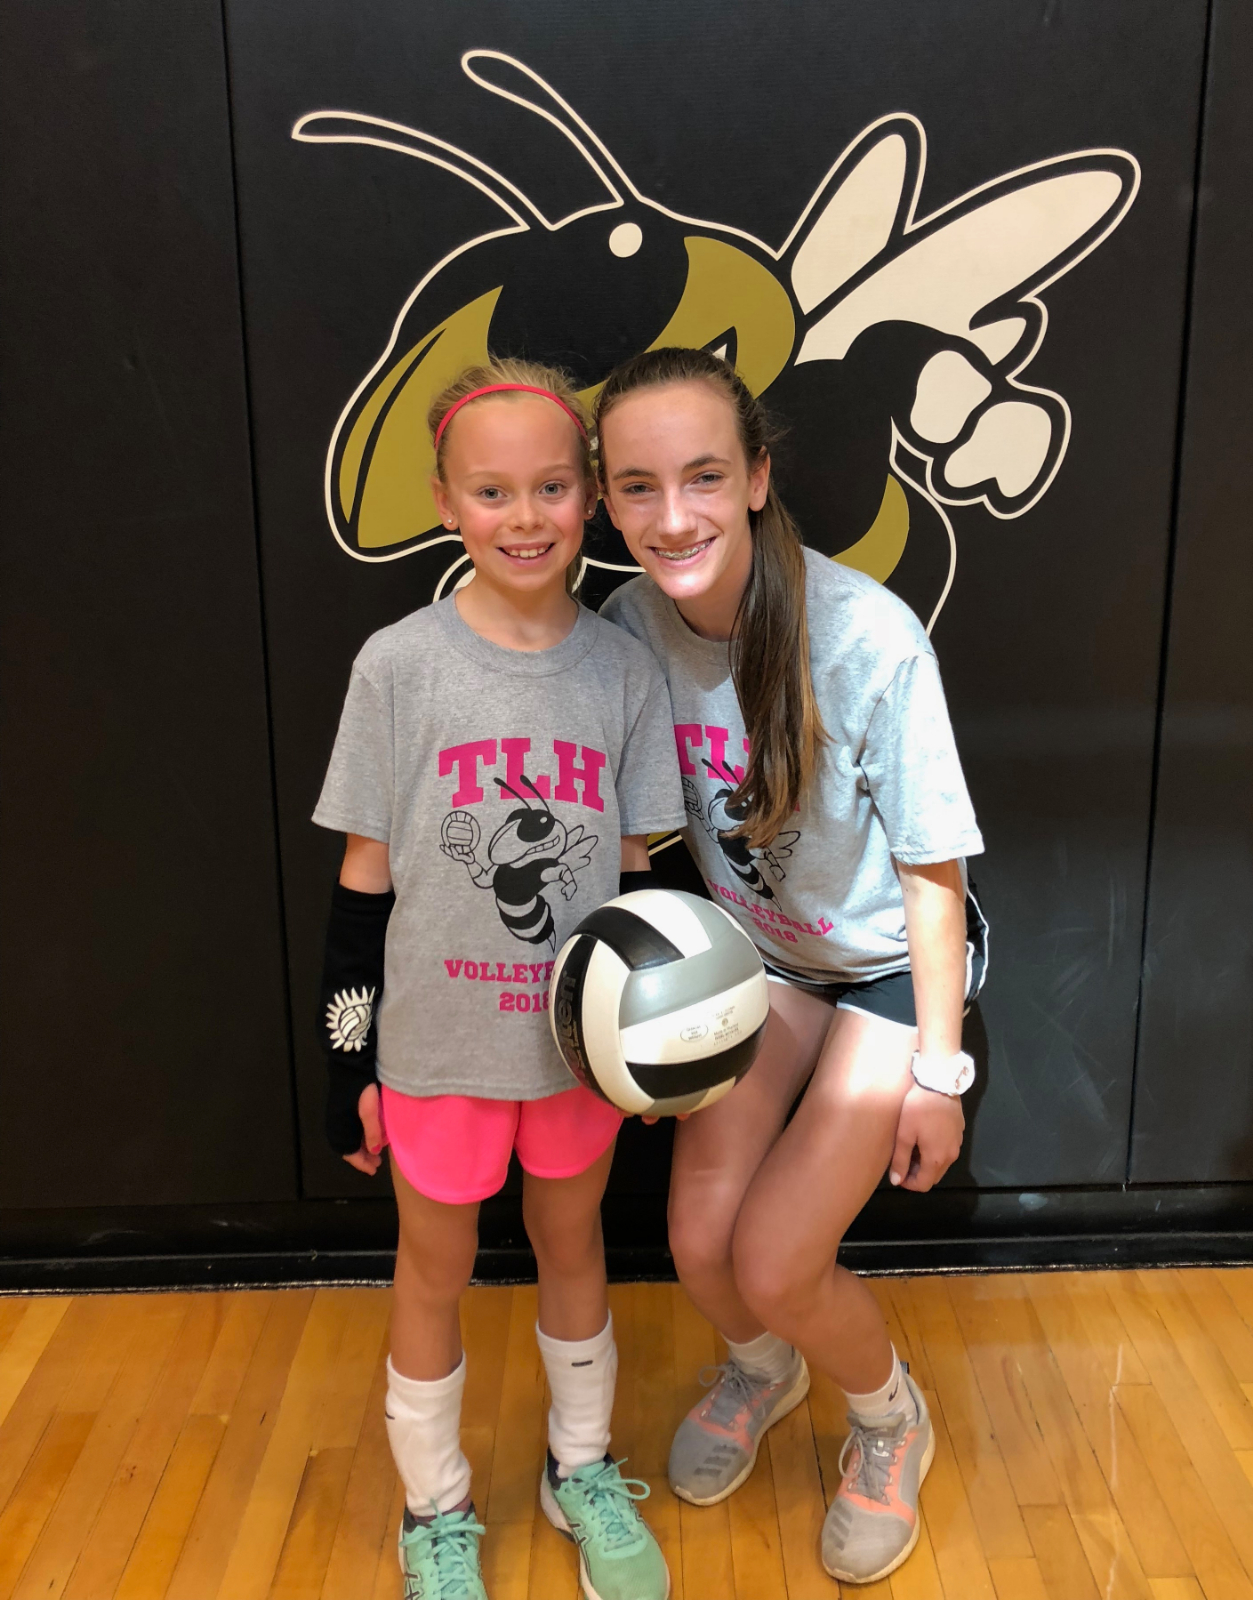 2019 T.L. Hanna Volleyball Camp Registration